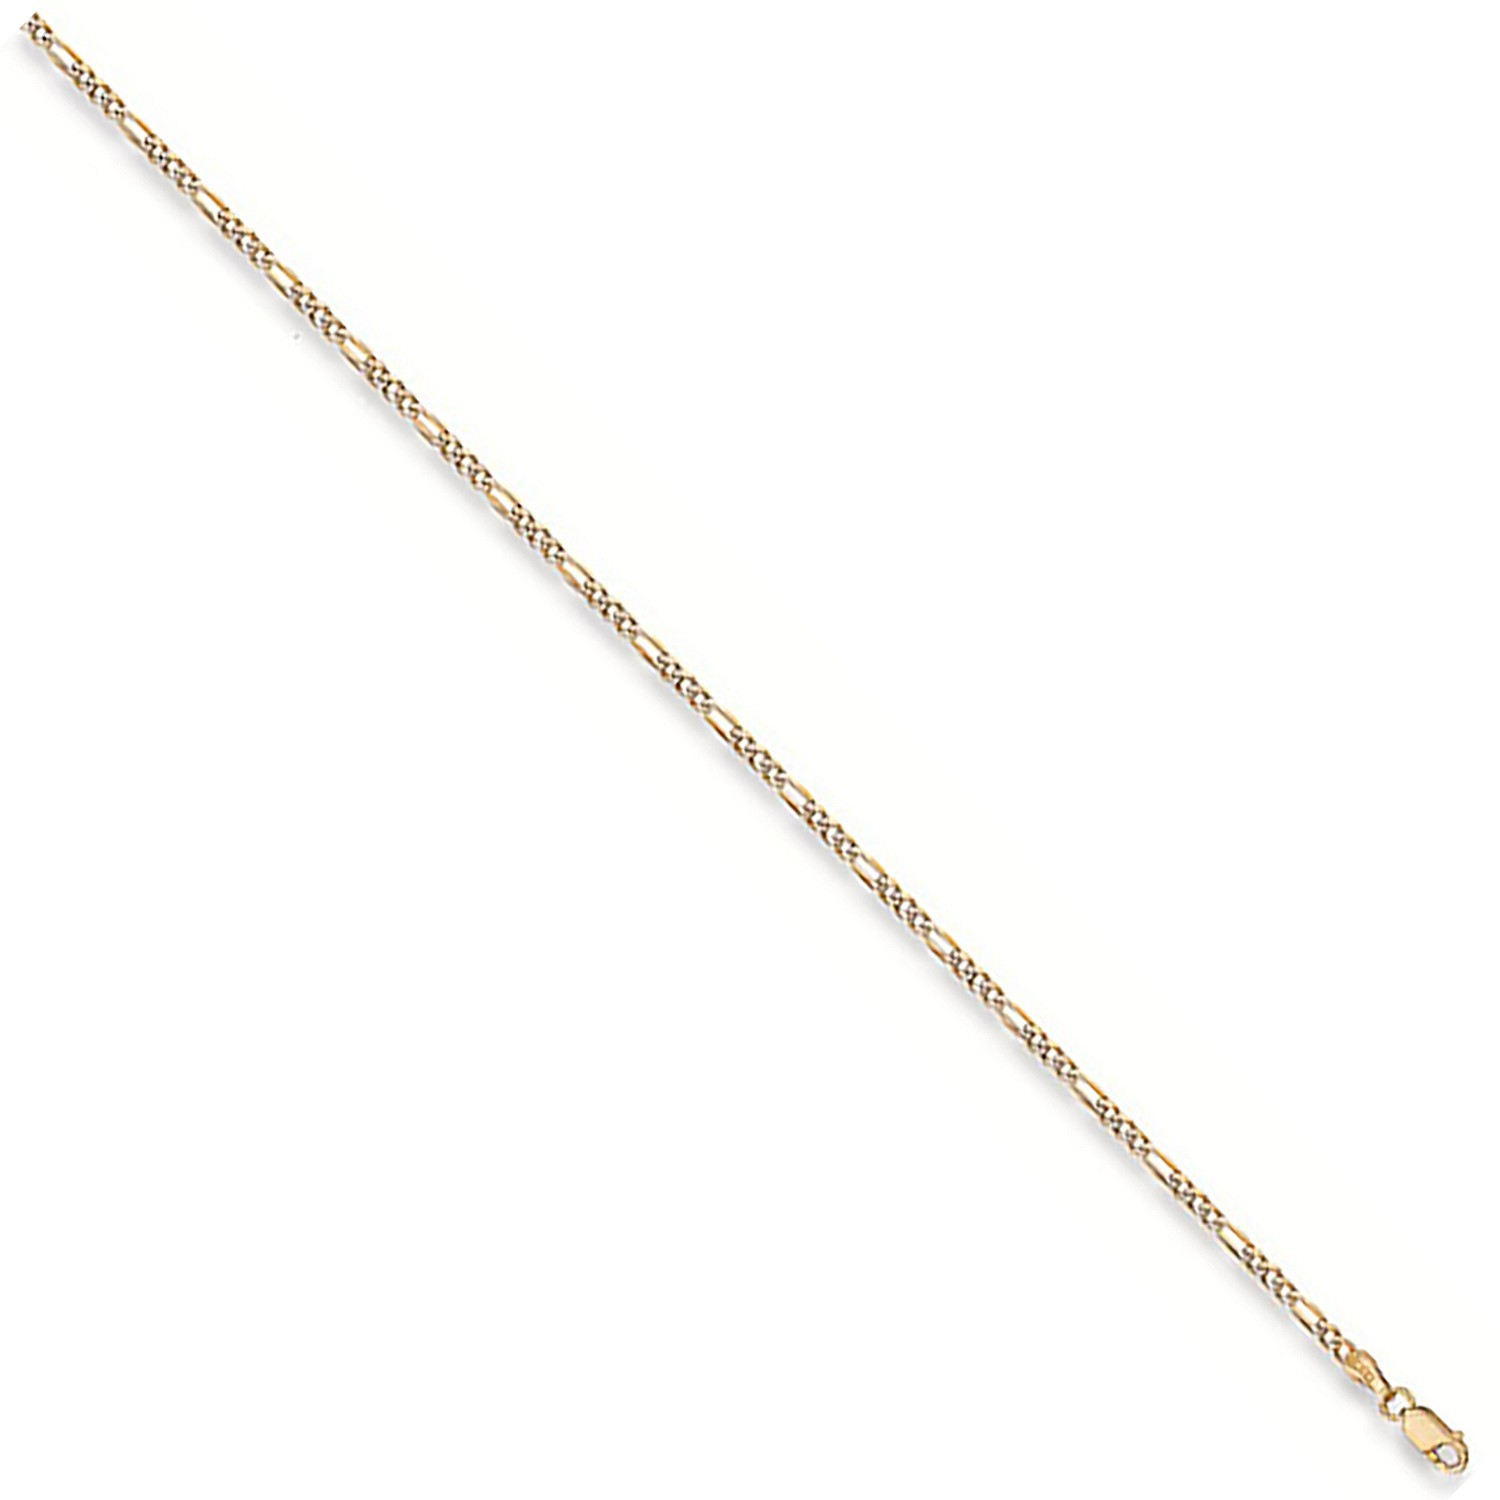 Y/G Rhodium Plated Figaro Anklet